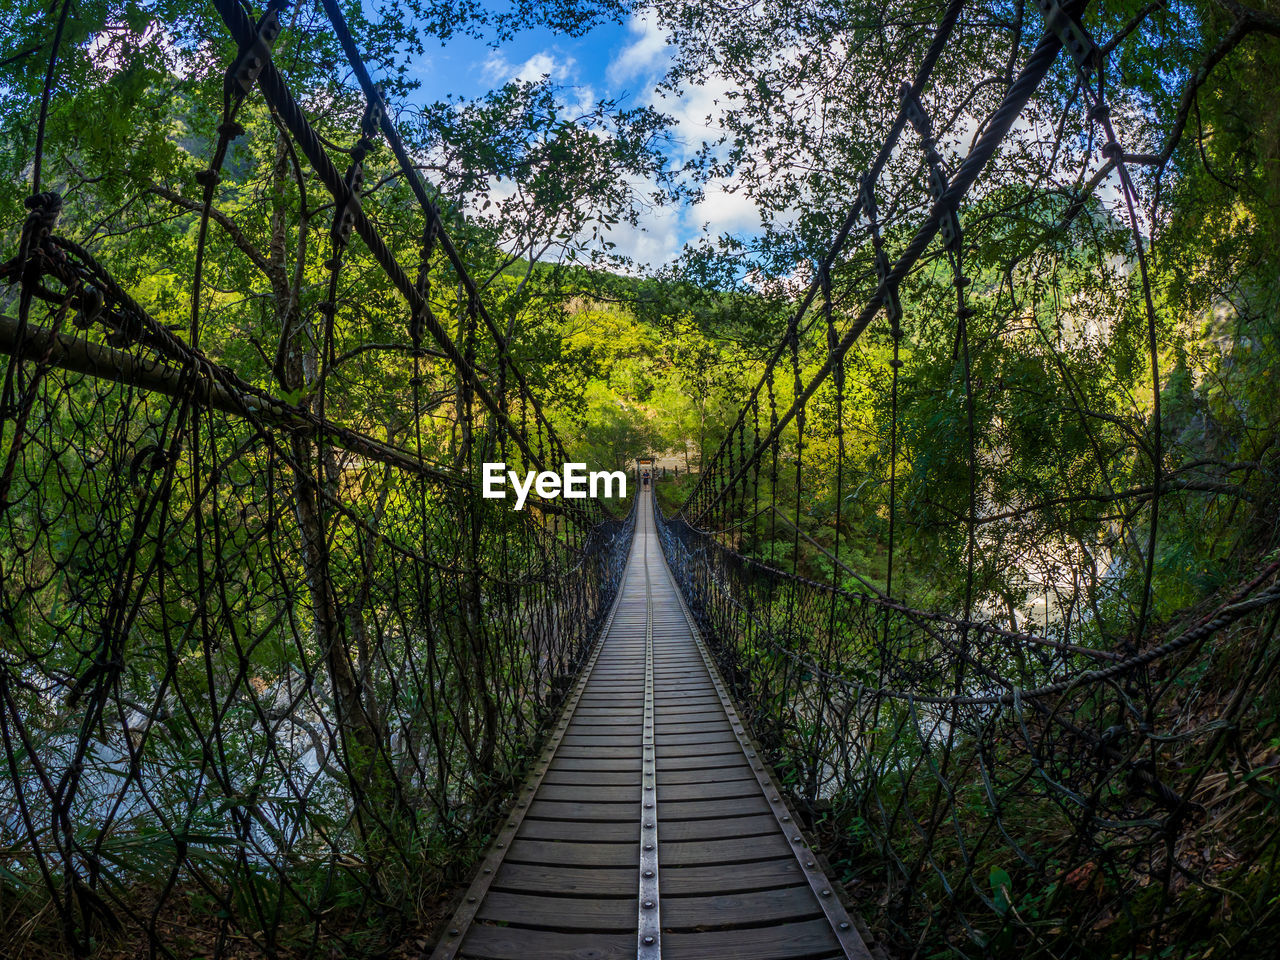 tree, plant, direction, the way forward, land, tranquility, nature, growth, forest, diminishing perspective, wood - material, beauty in nature, day, footbridge, connection, bridge, tranquil scene, scenics - nature, green color, no people, outdoors, wood, change